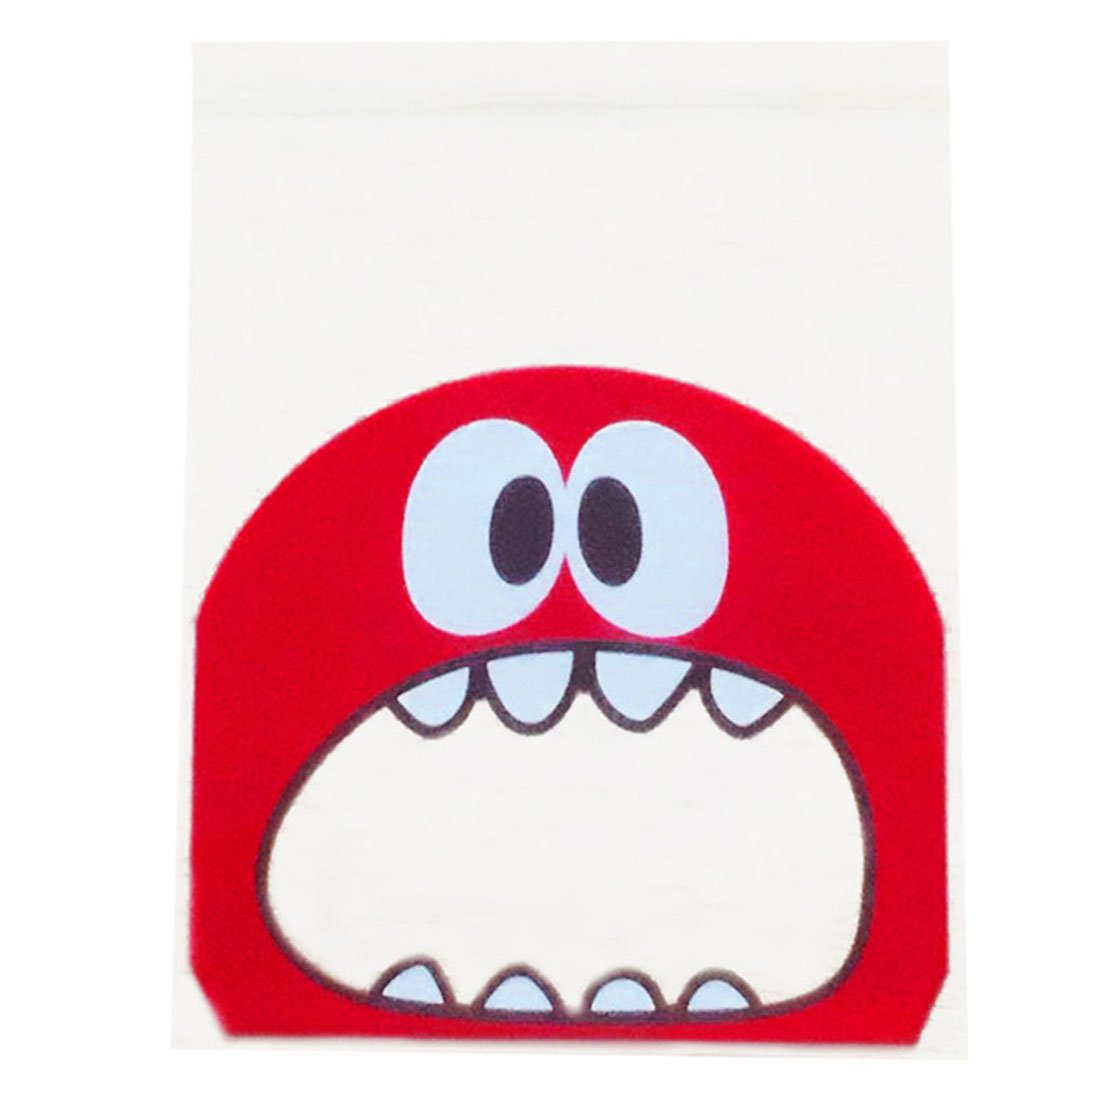 Biscuit Packaging Bag - TOOGOO(R)50pcs/lot small size cute little monster Candy cookie Bags Self-adhesive Plastic Biscuit Packaging Bag 1010cm plus 3cm(red)